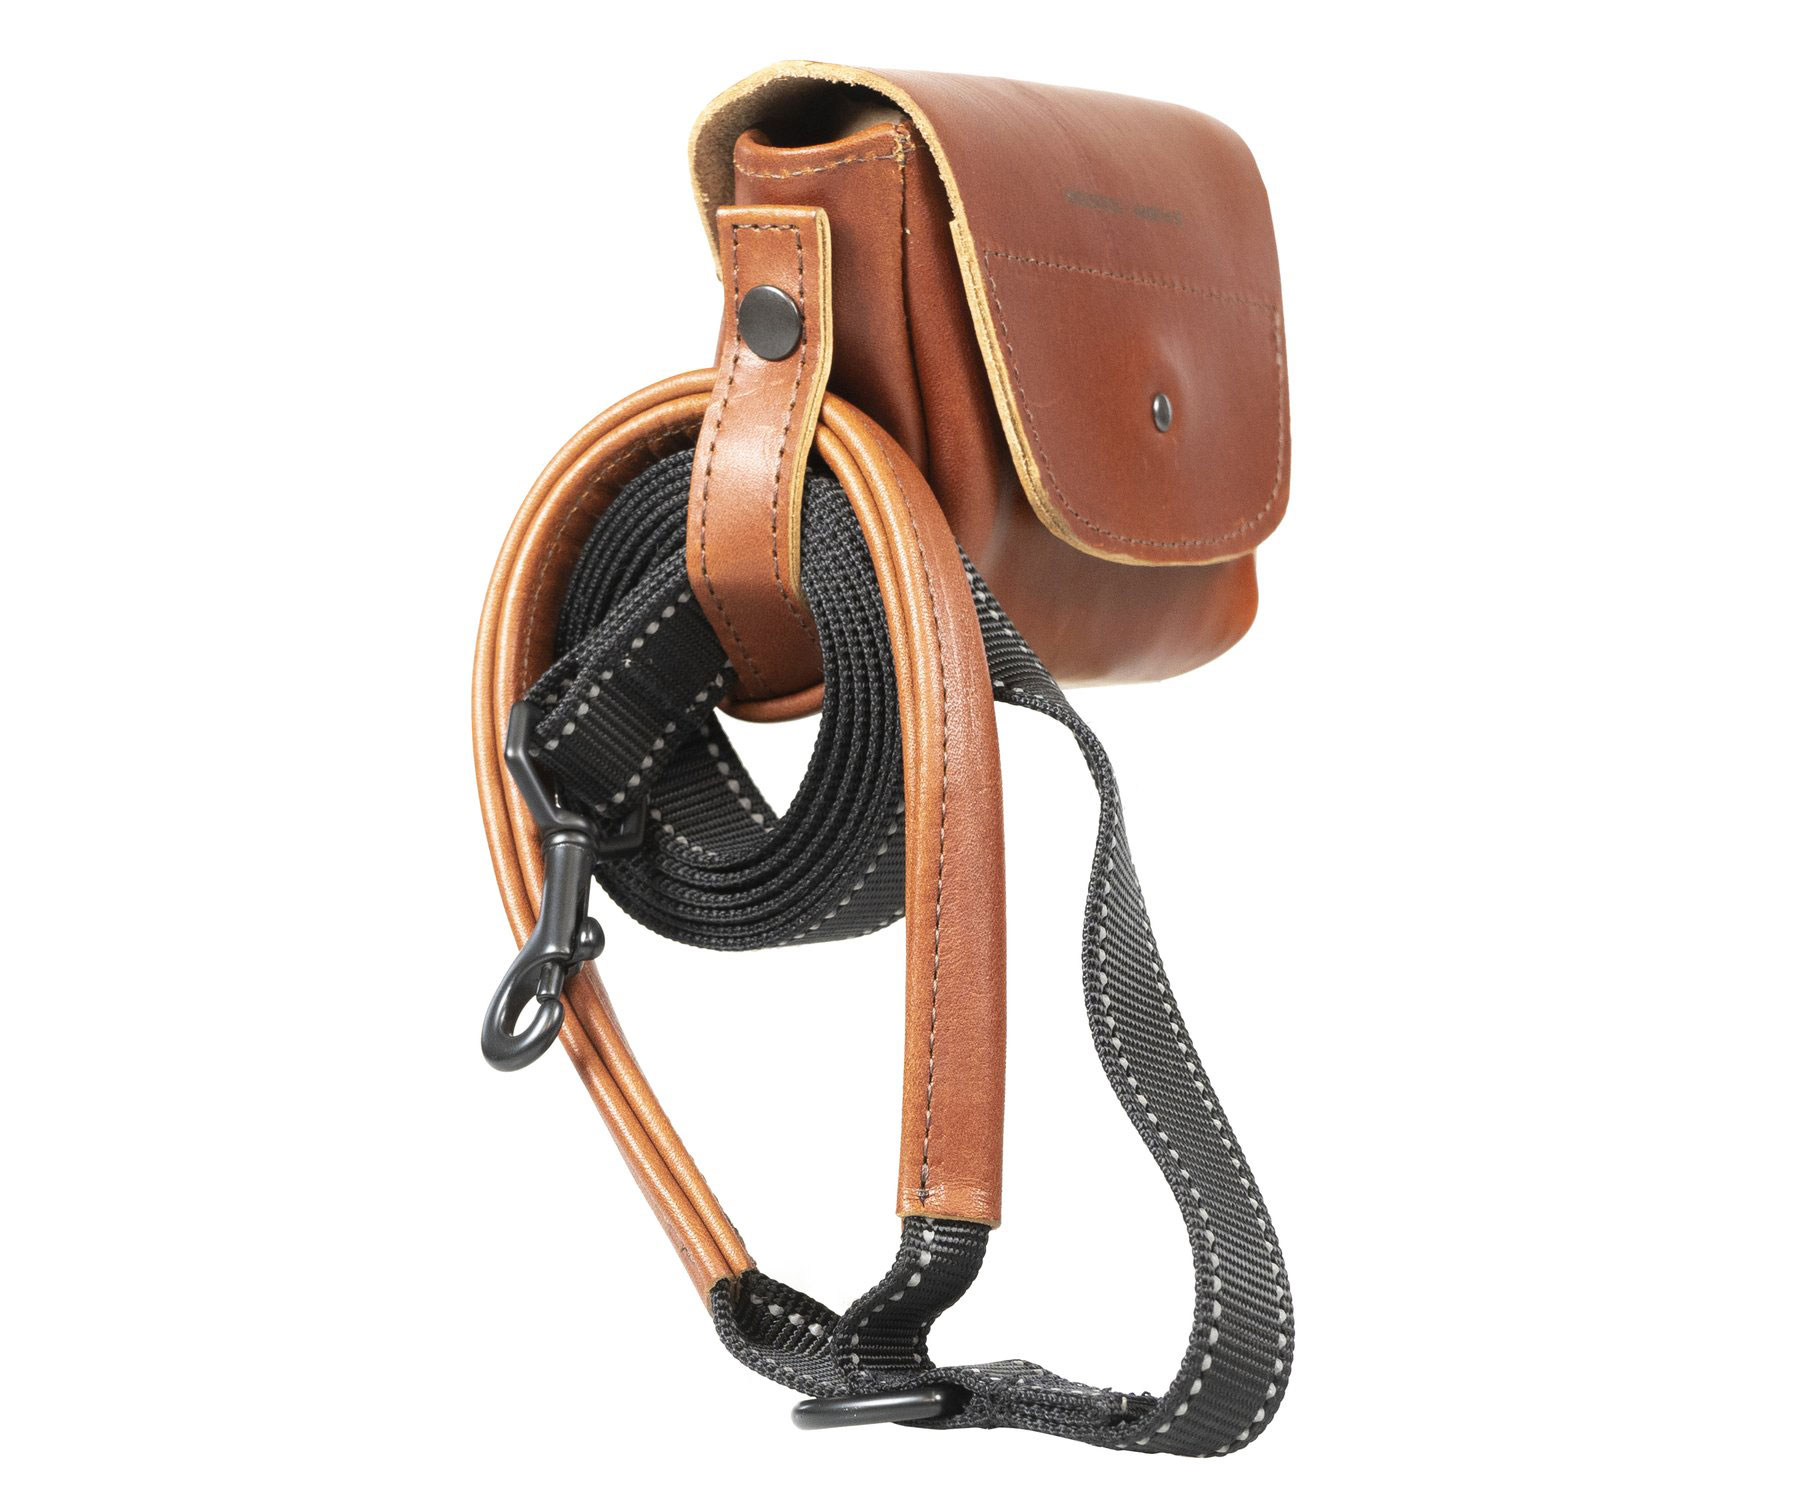 6 Clever Items (12/18/20) - WaterField Designs Wag Hip Pack